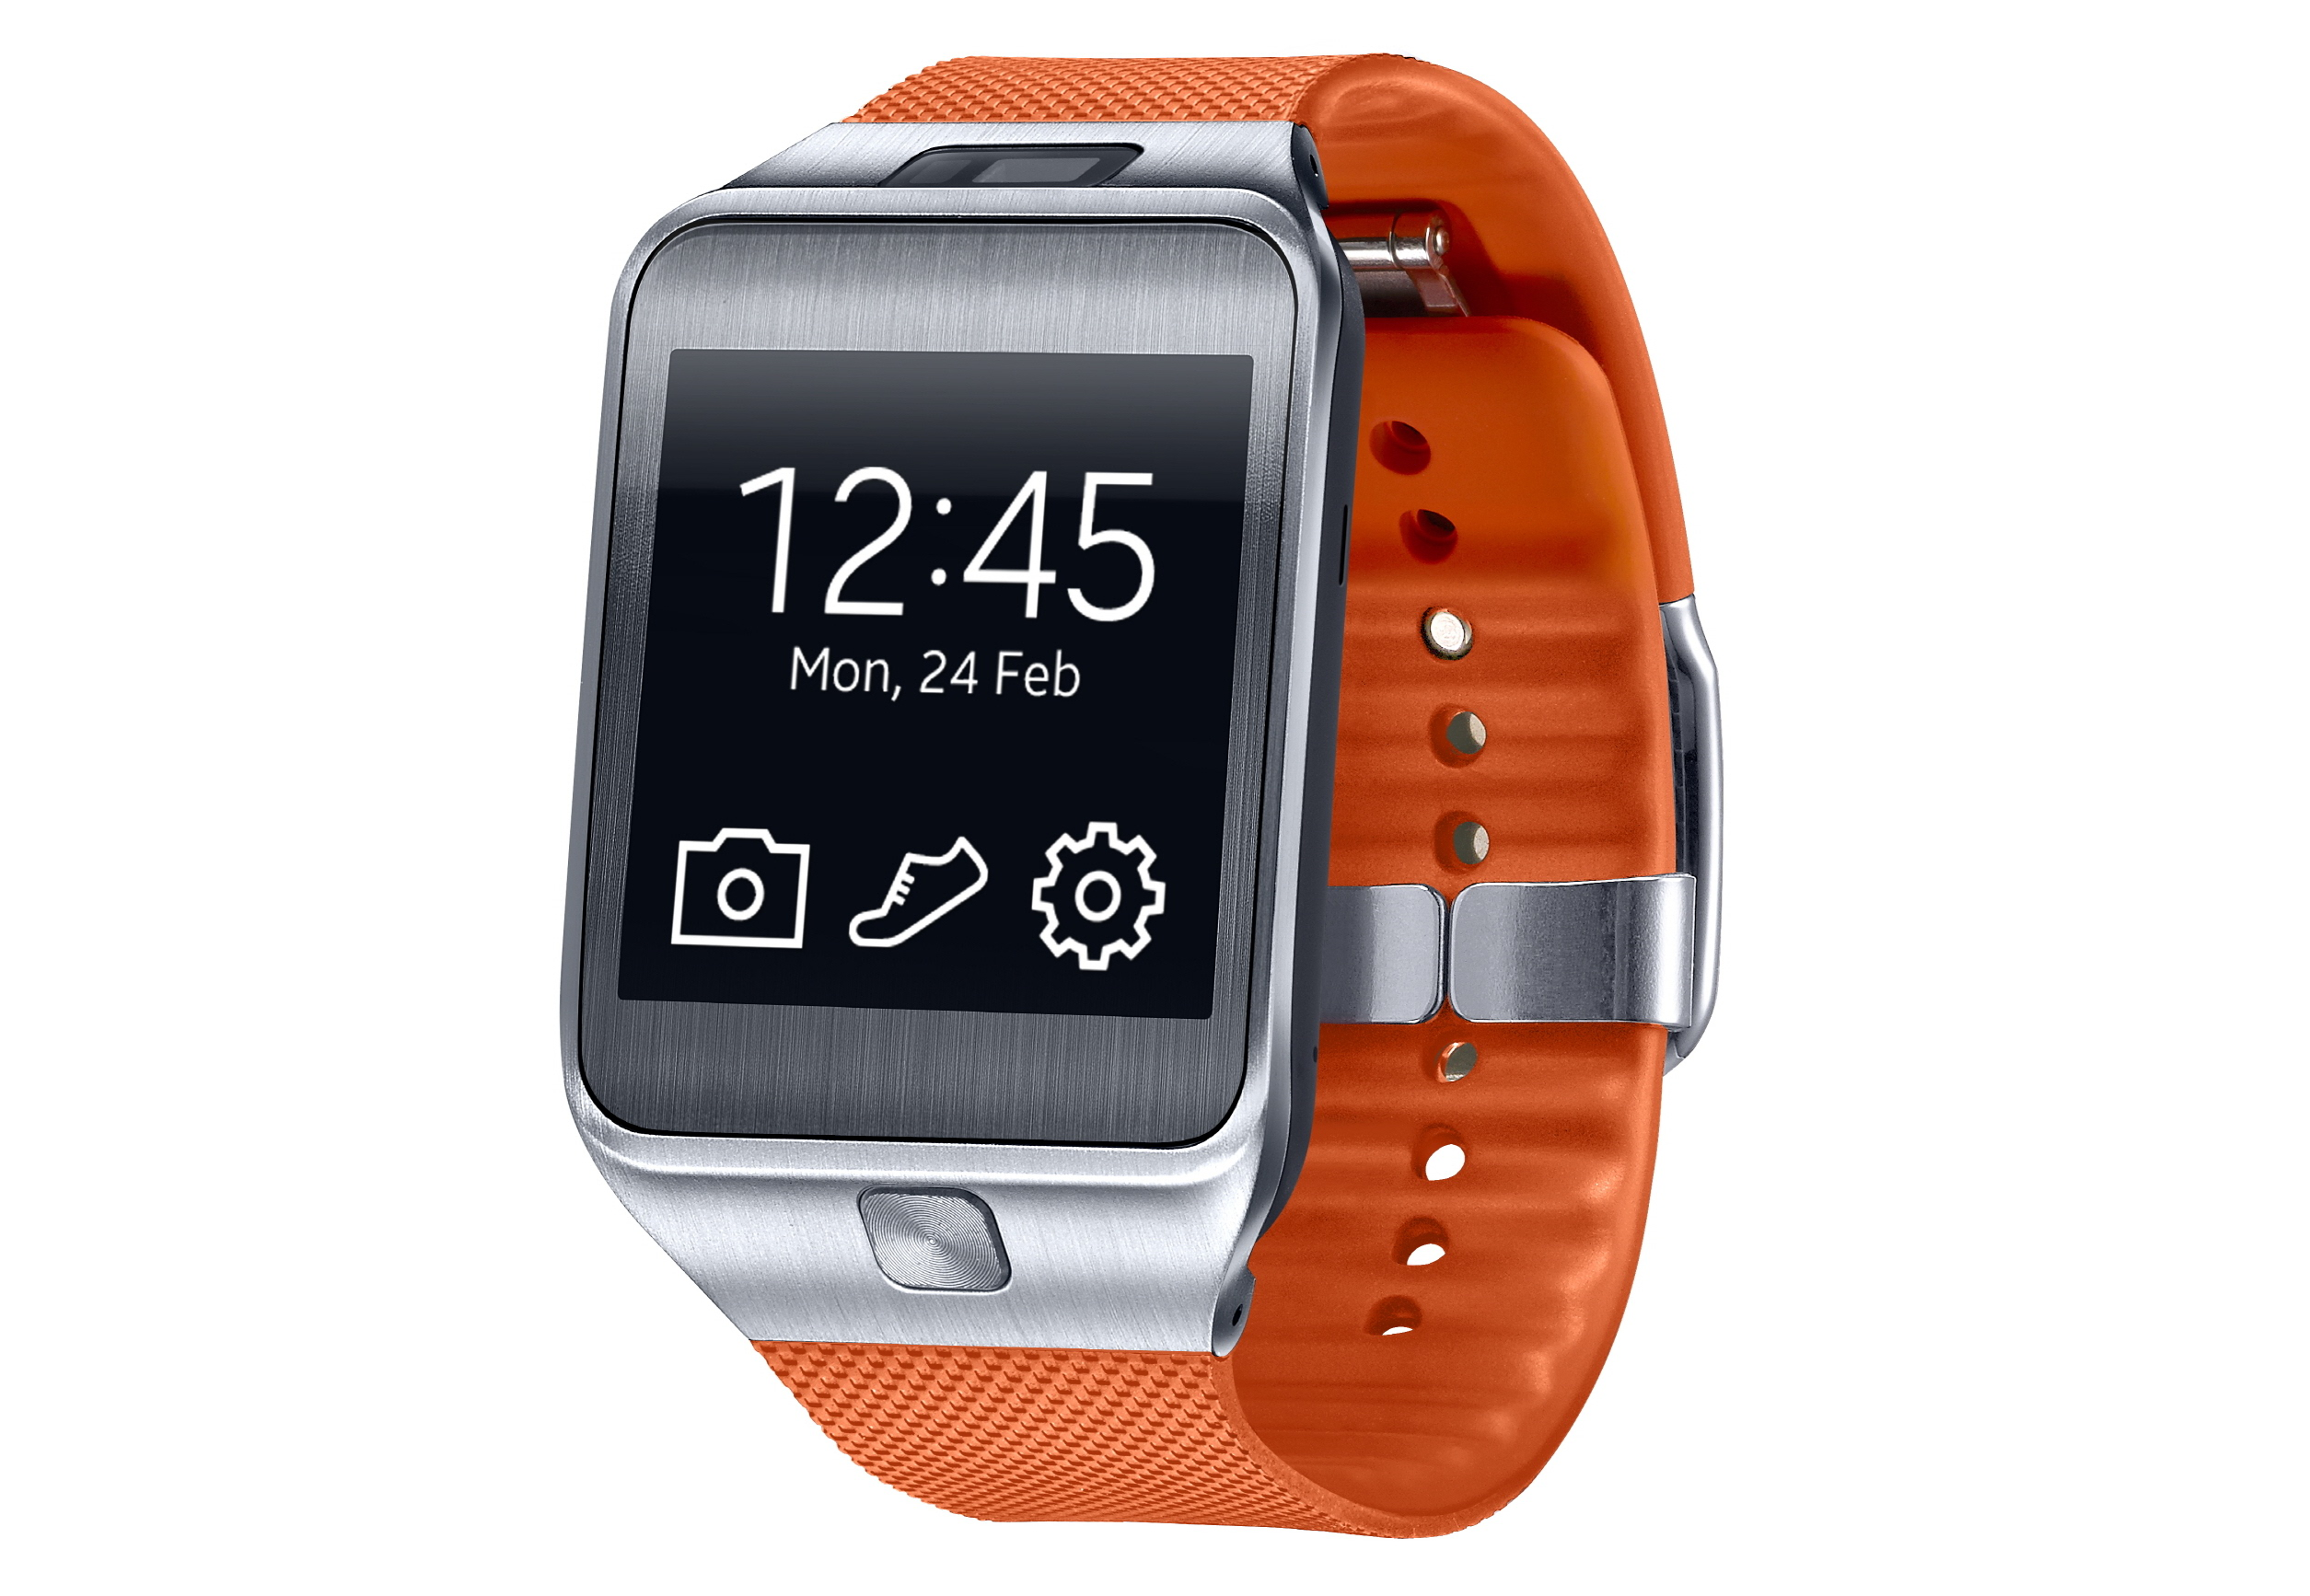 samsung gear 2 smartwatches launching in april